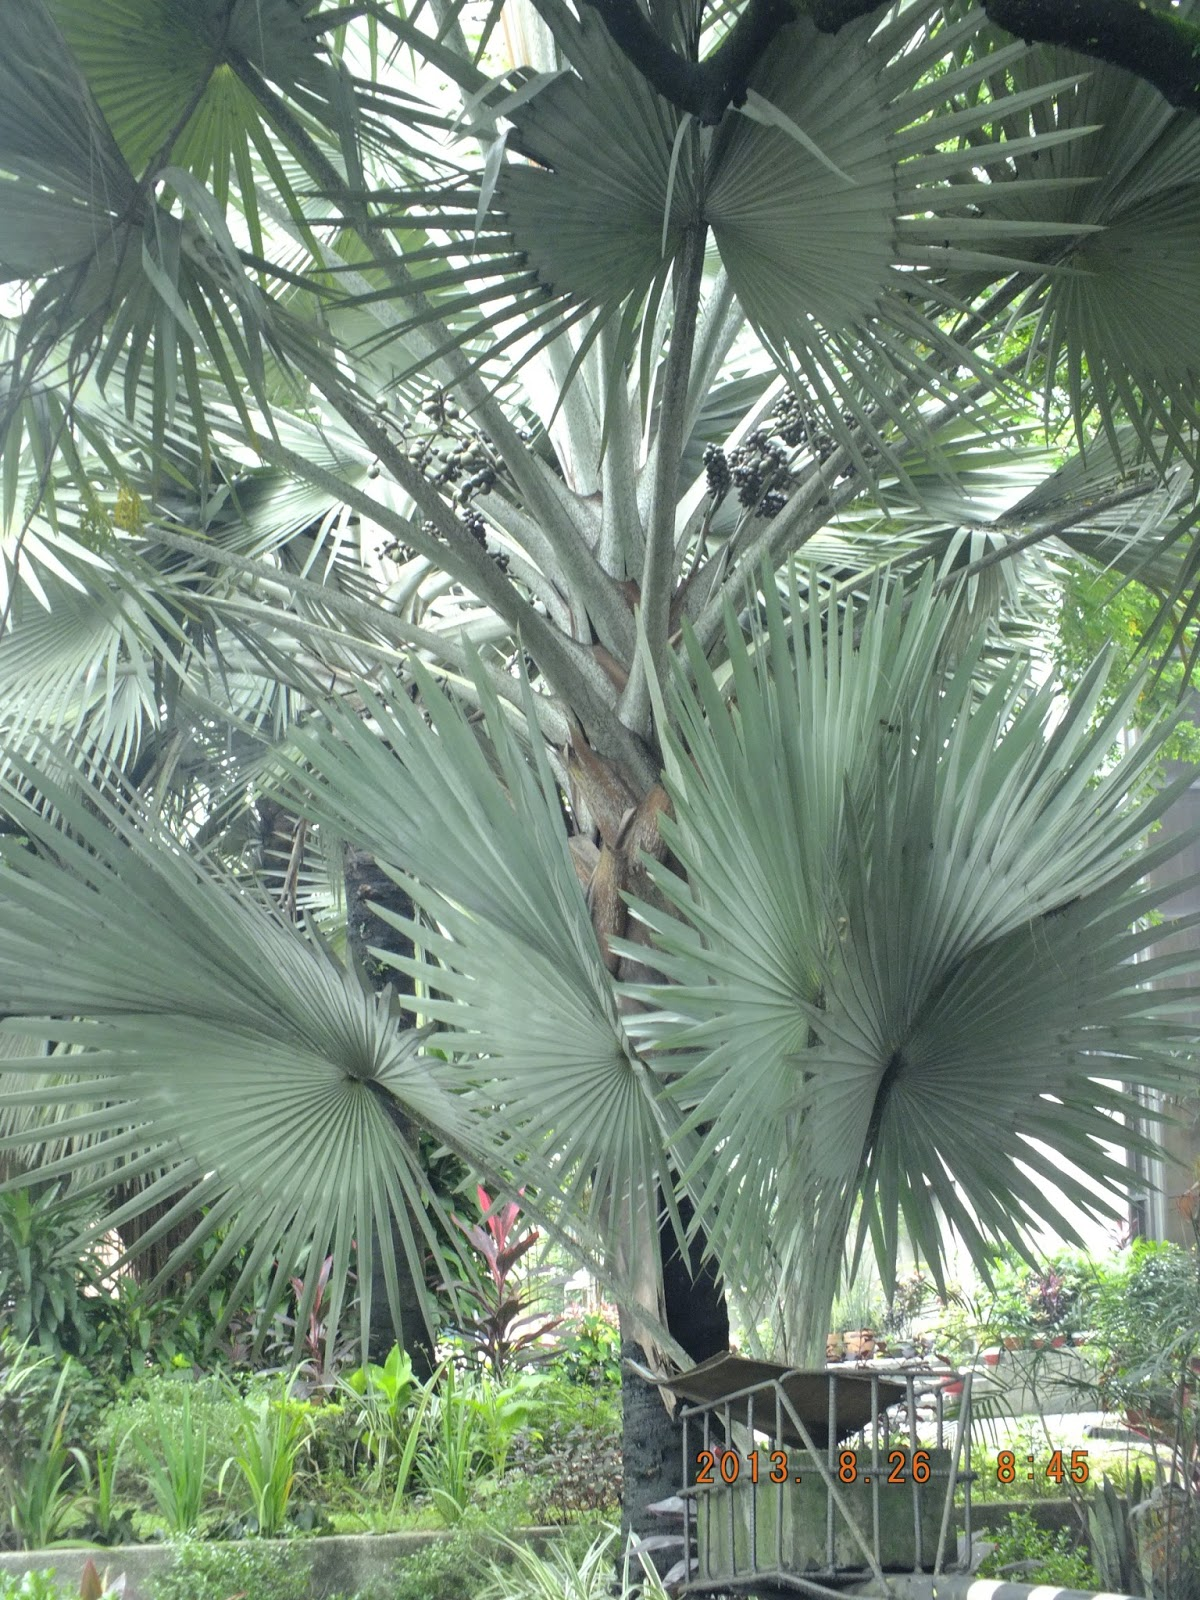 Photography with Dr. Ernie.: A palm tree with anahaw ...